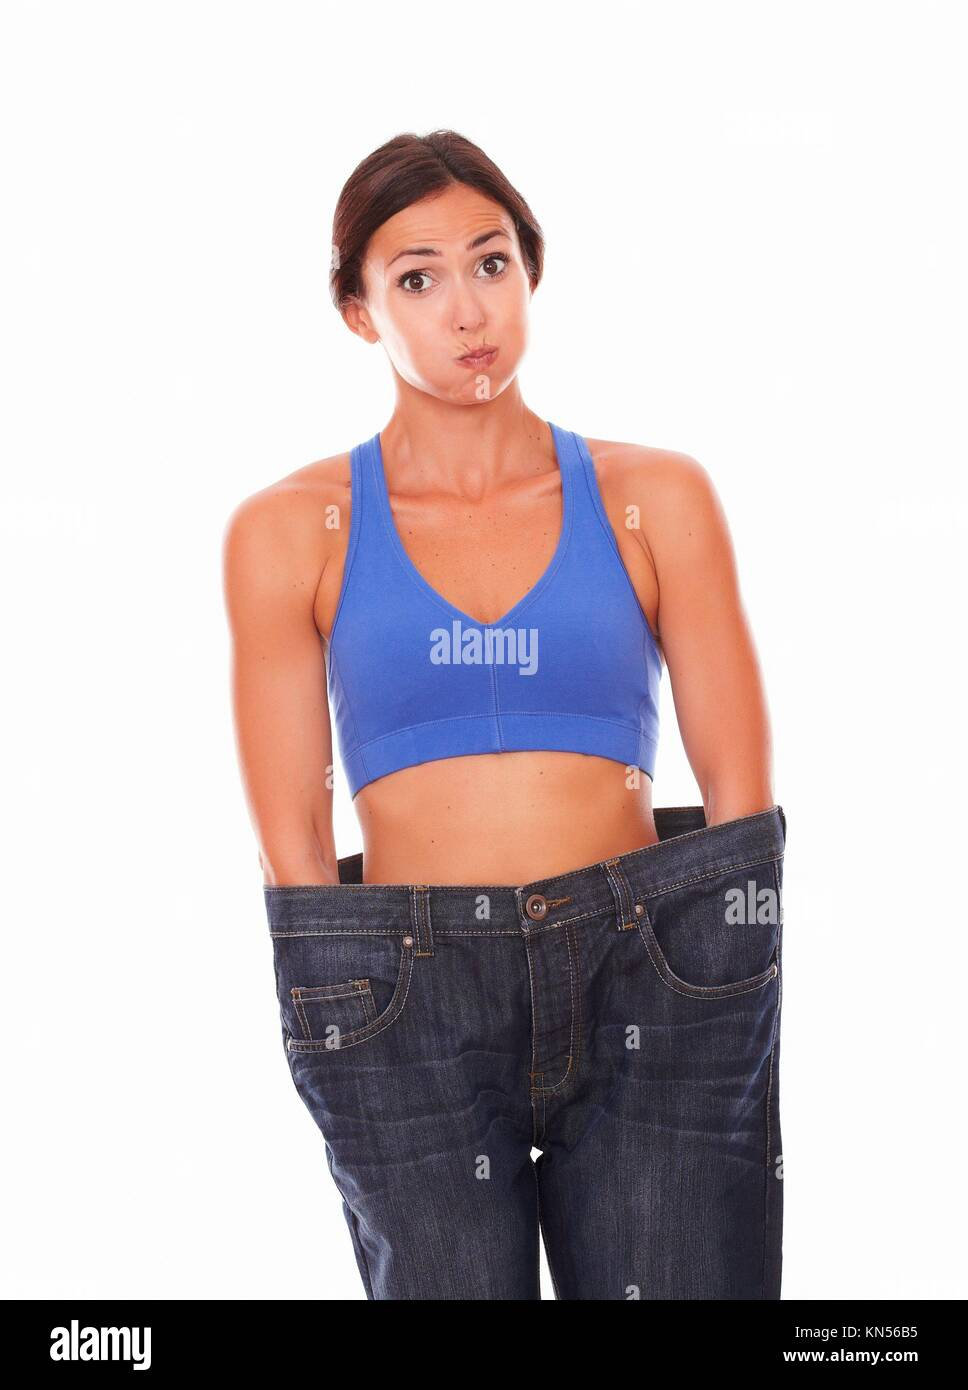 Brunette feeling satisfied with weight loss while is making a fanny face against white background. - Stock Image